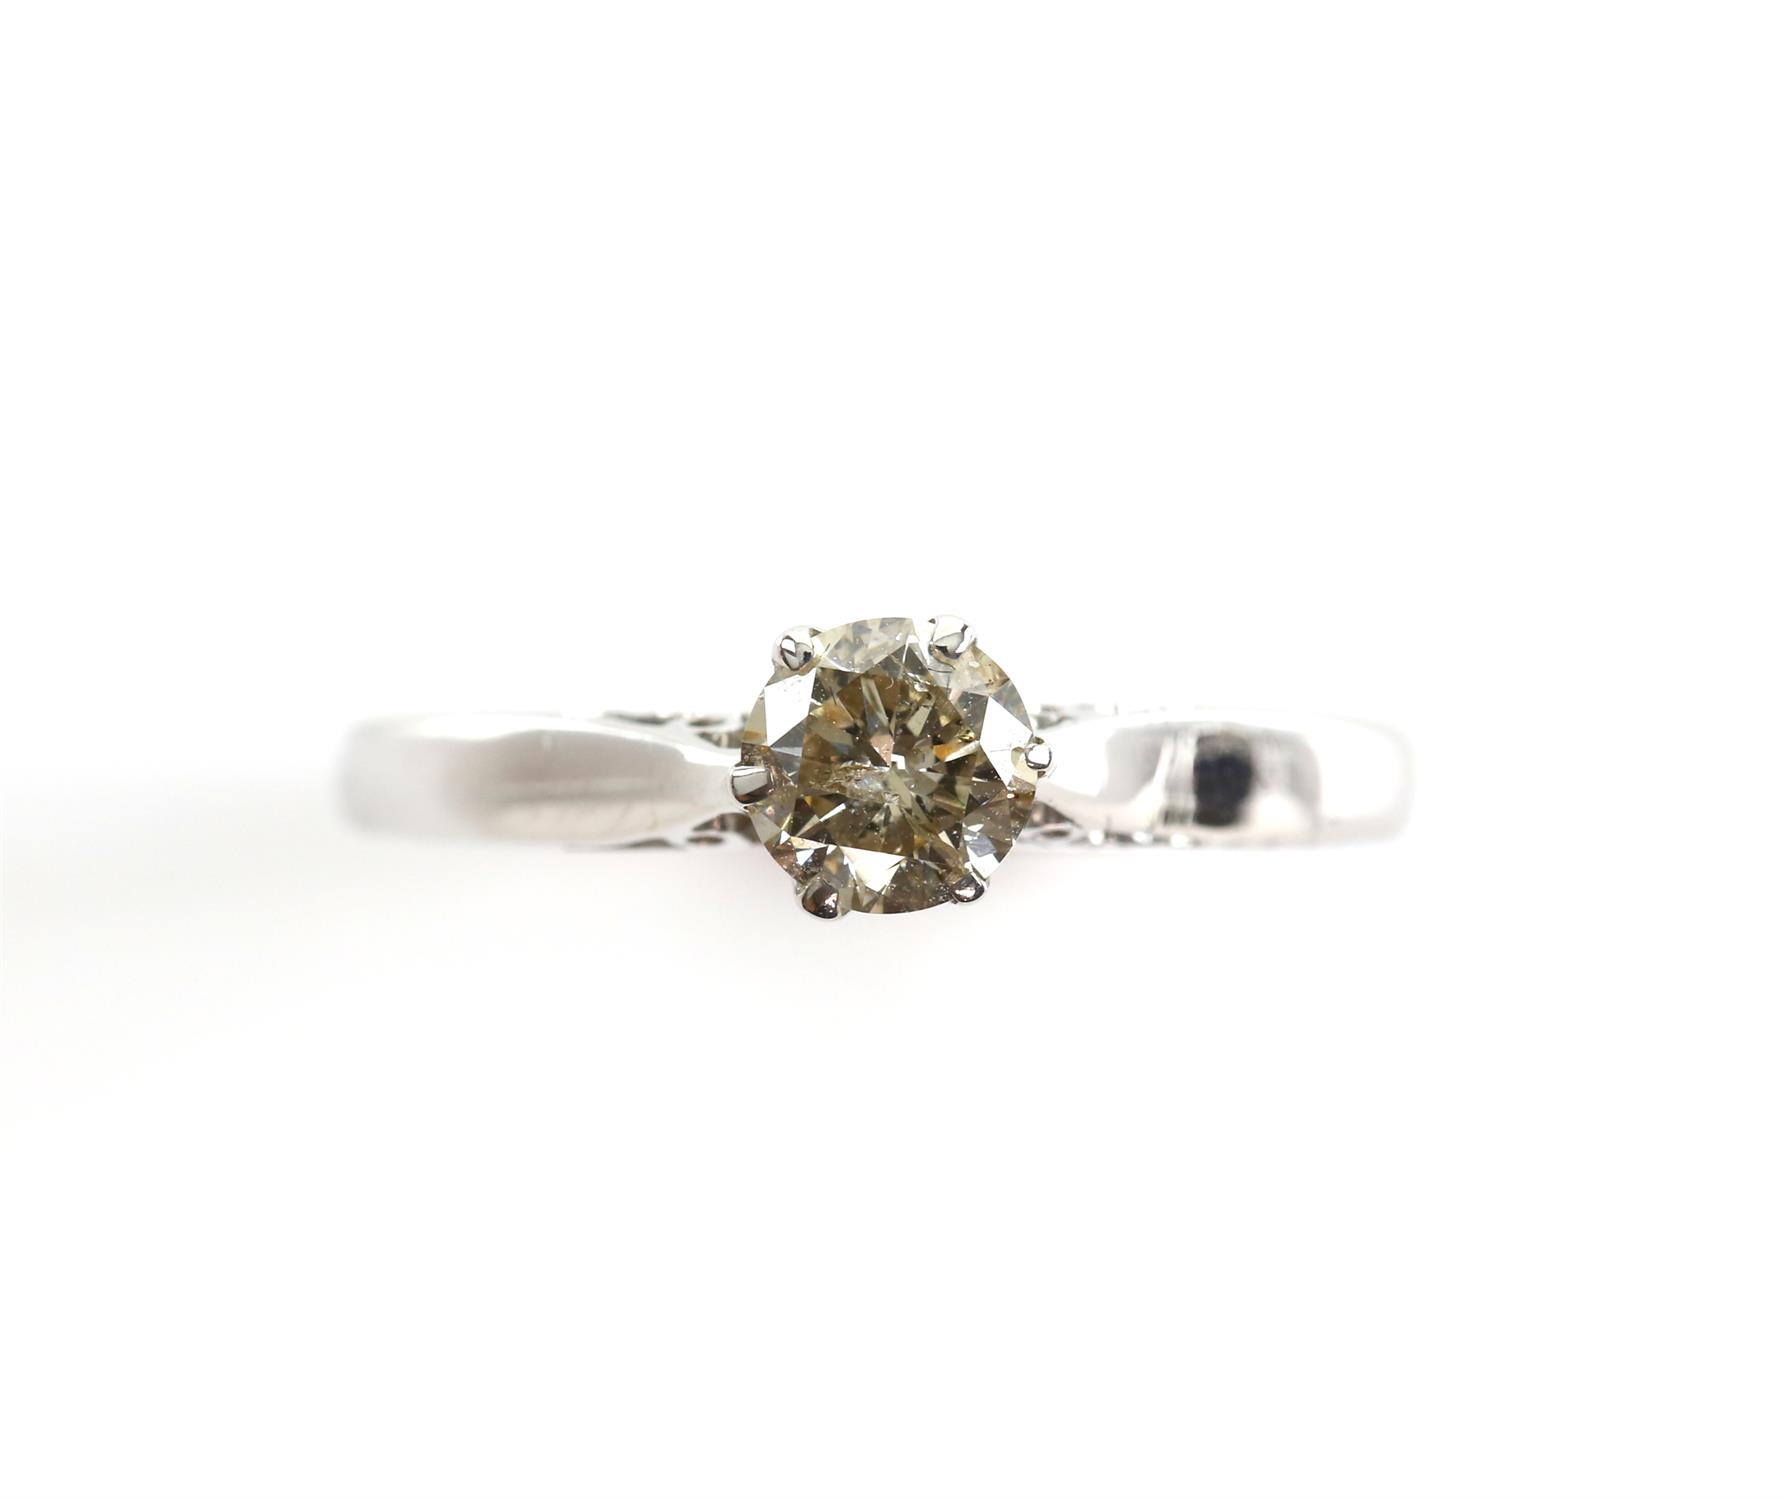 Diamond single stone ring, round brilliant cut diamond weighing an estimated 0.68 carats, claw set,